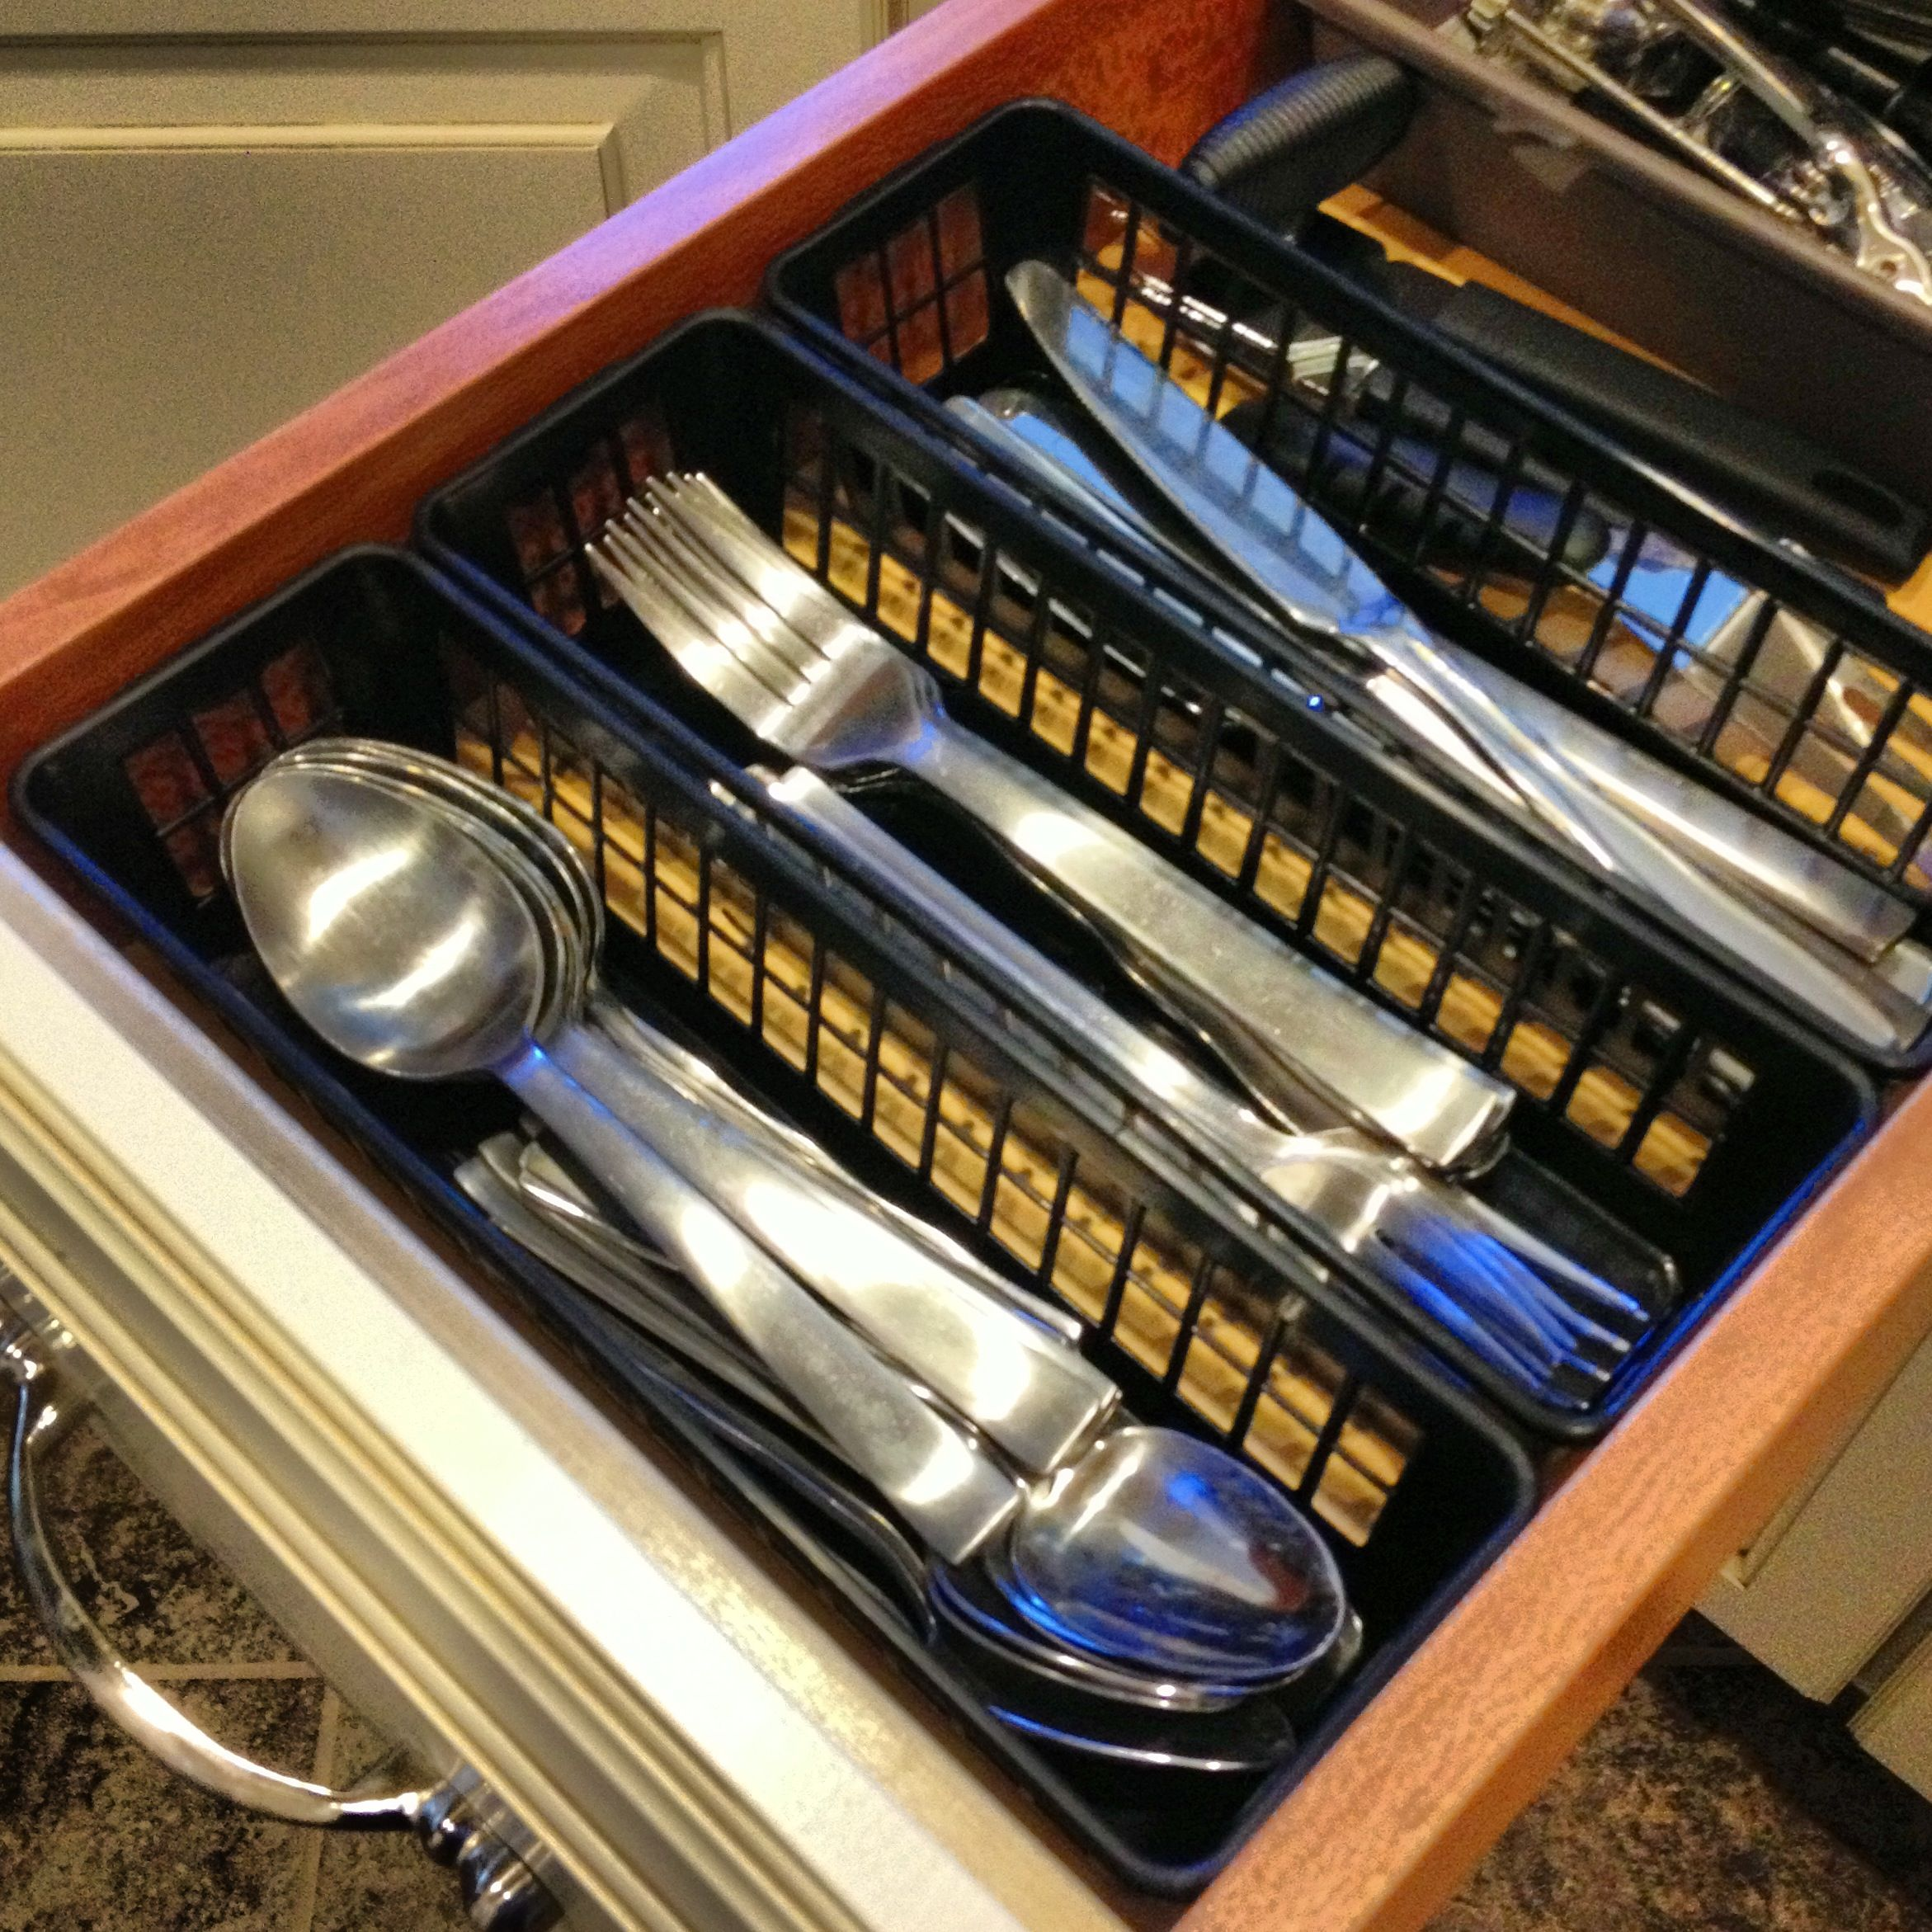 Pin On Organize Creatively